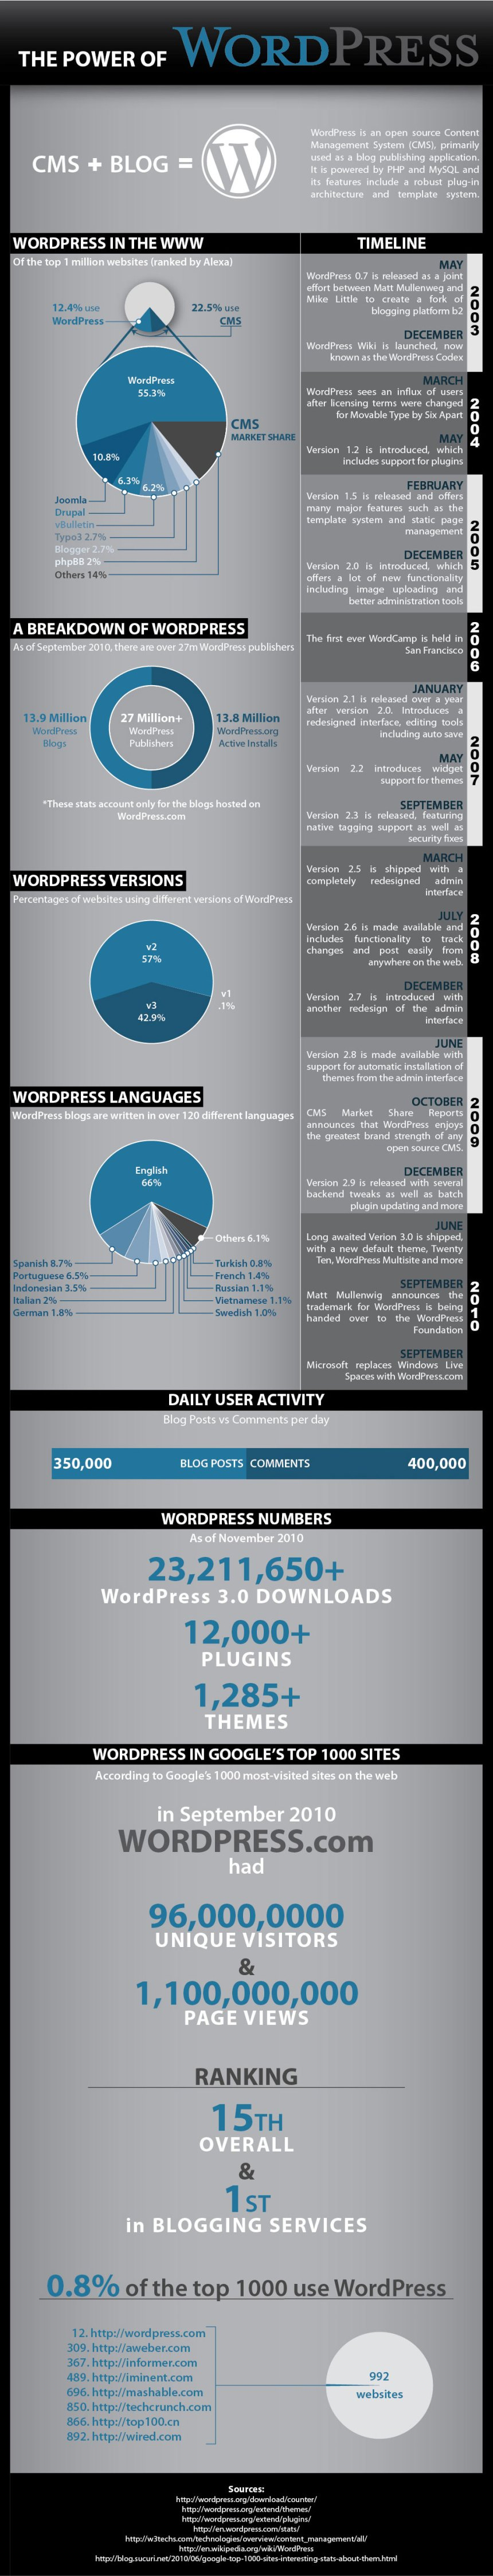 Infographic: The Power of WordPress